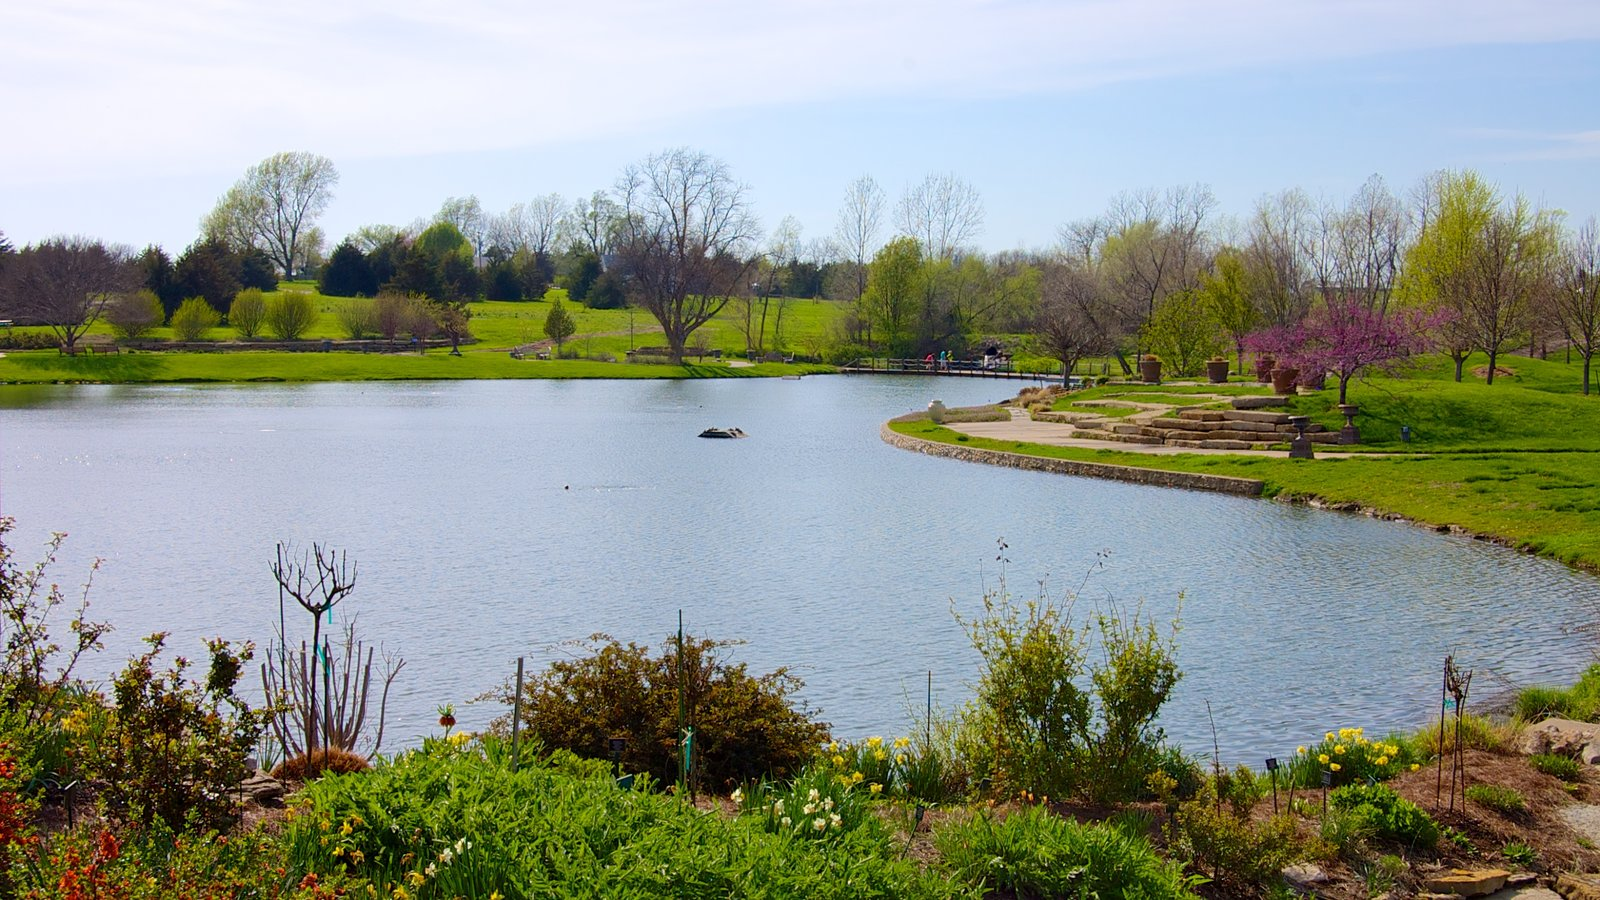 Overland Park Arboretum And Botanical Gardens Showing A Lake Or Waterhole,  A Park And Landscape